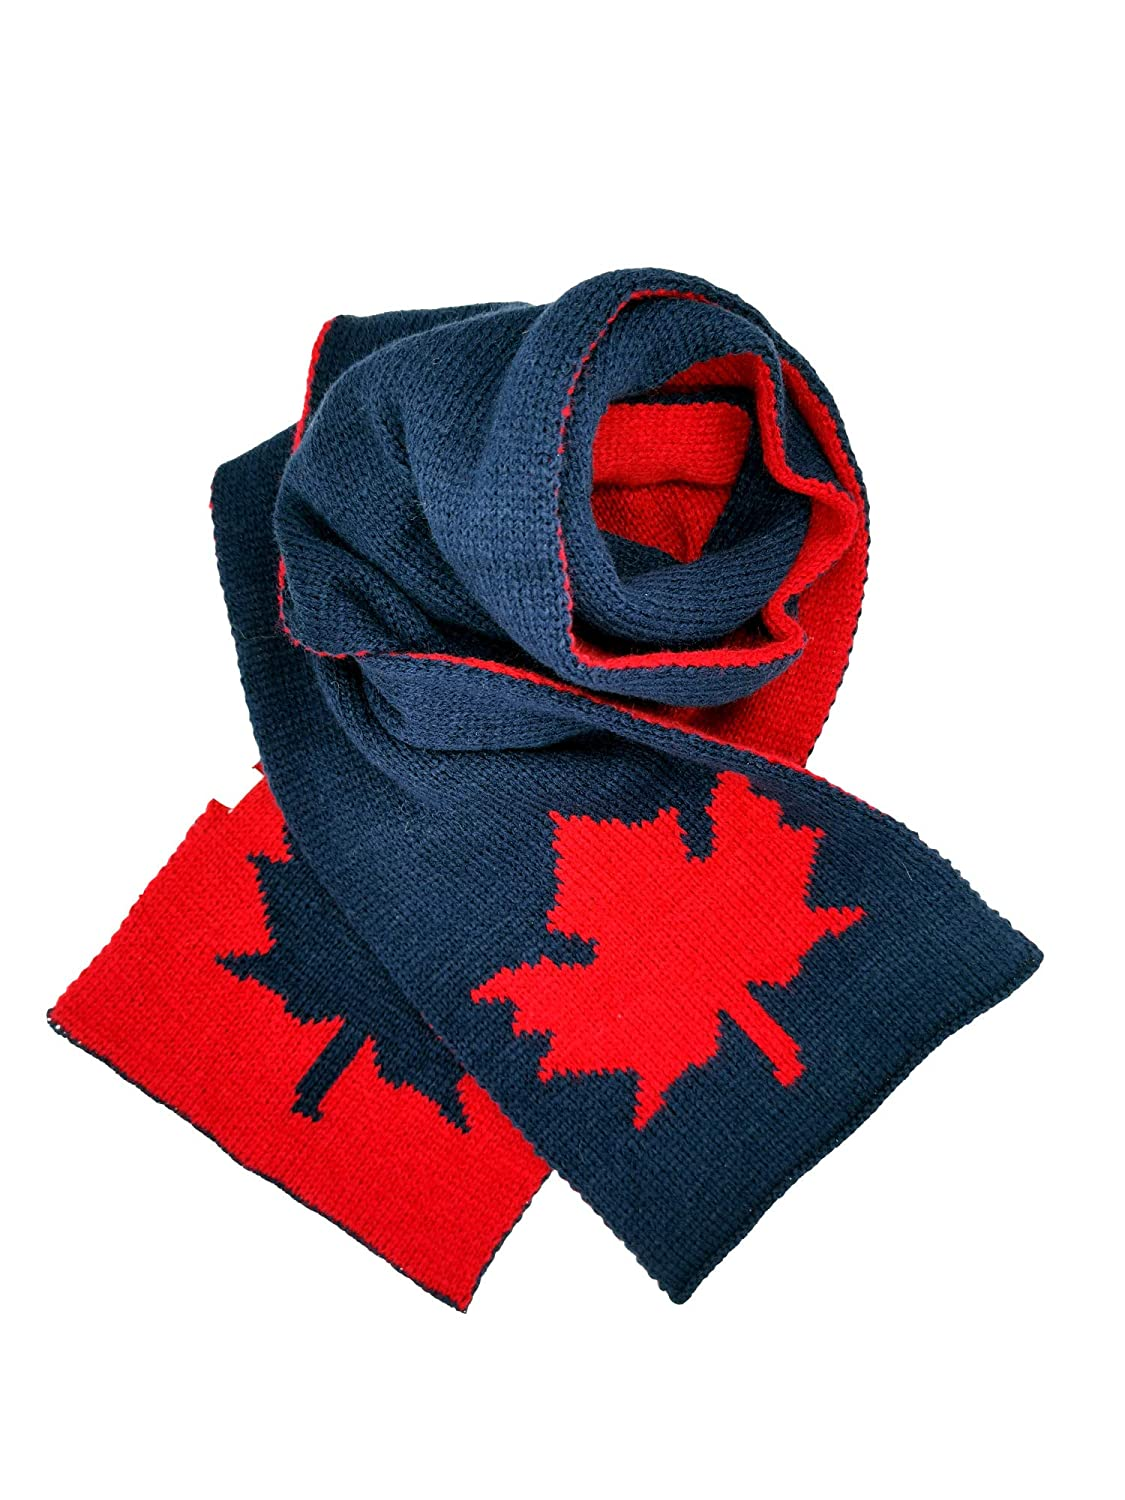 Double Jacquard Knit Warm for Girls and Boys Navy luyi Canadian Maple Leaf Culture Winter Scarf